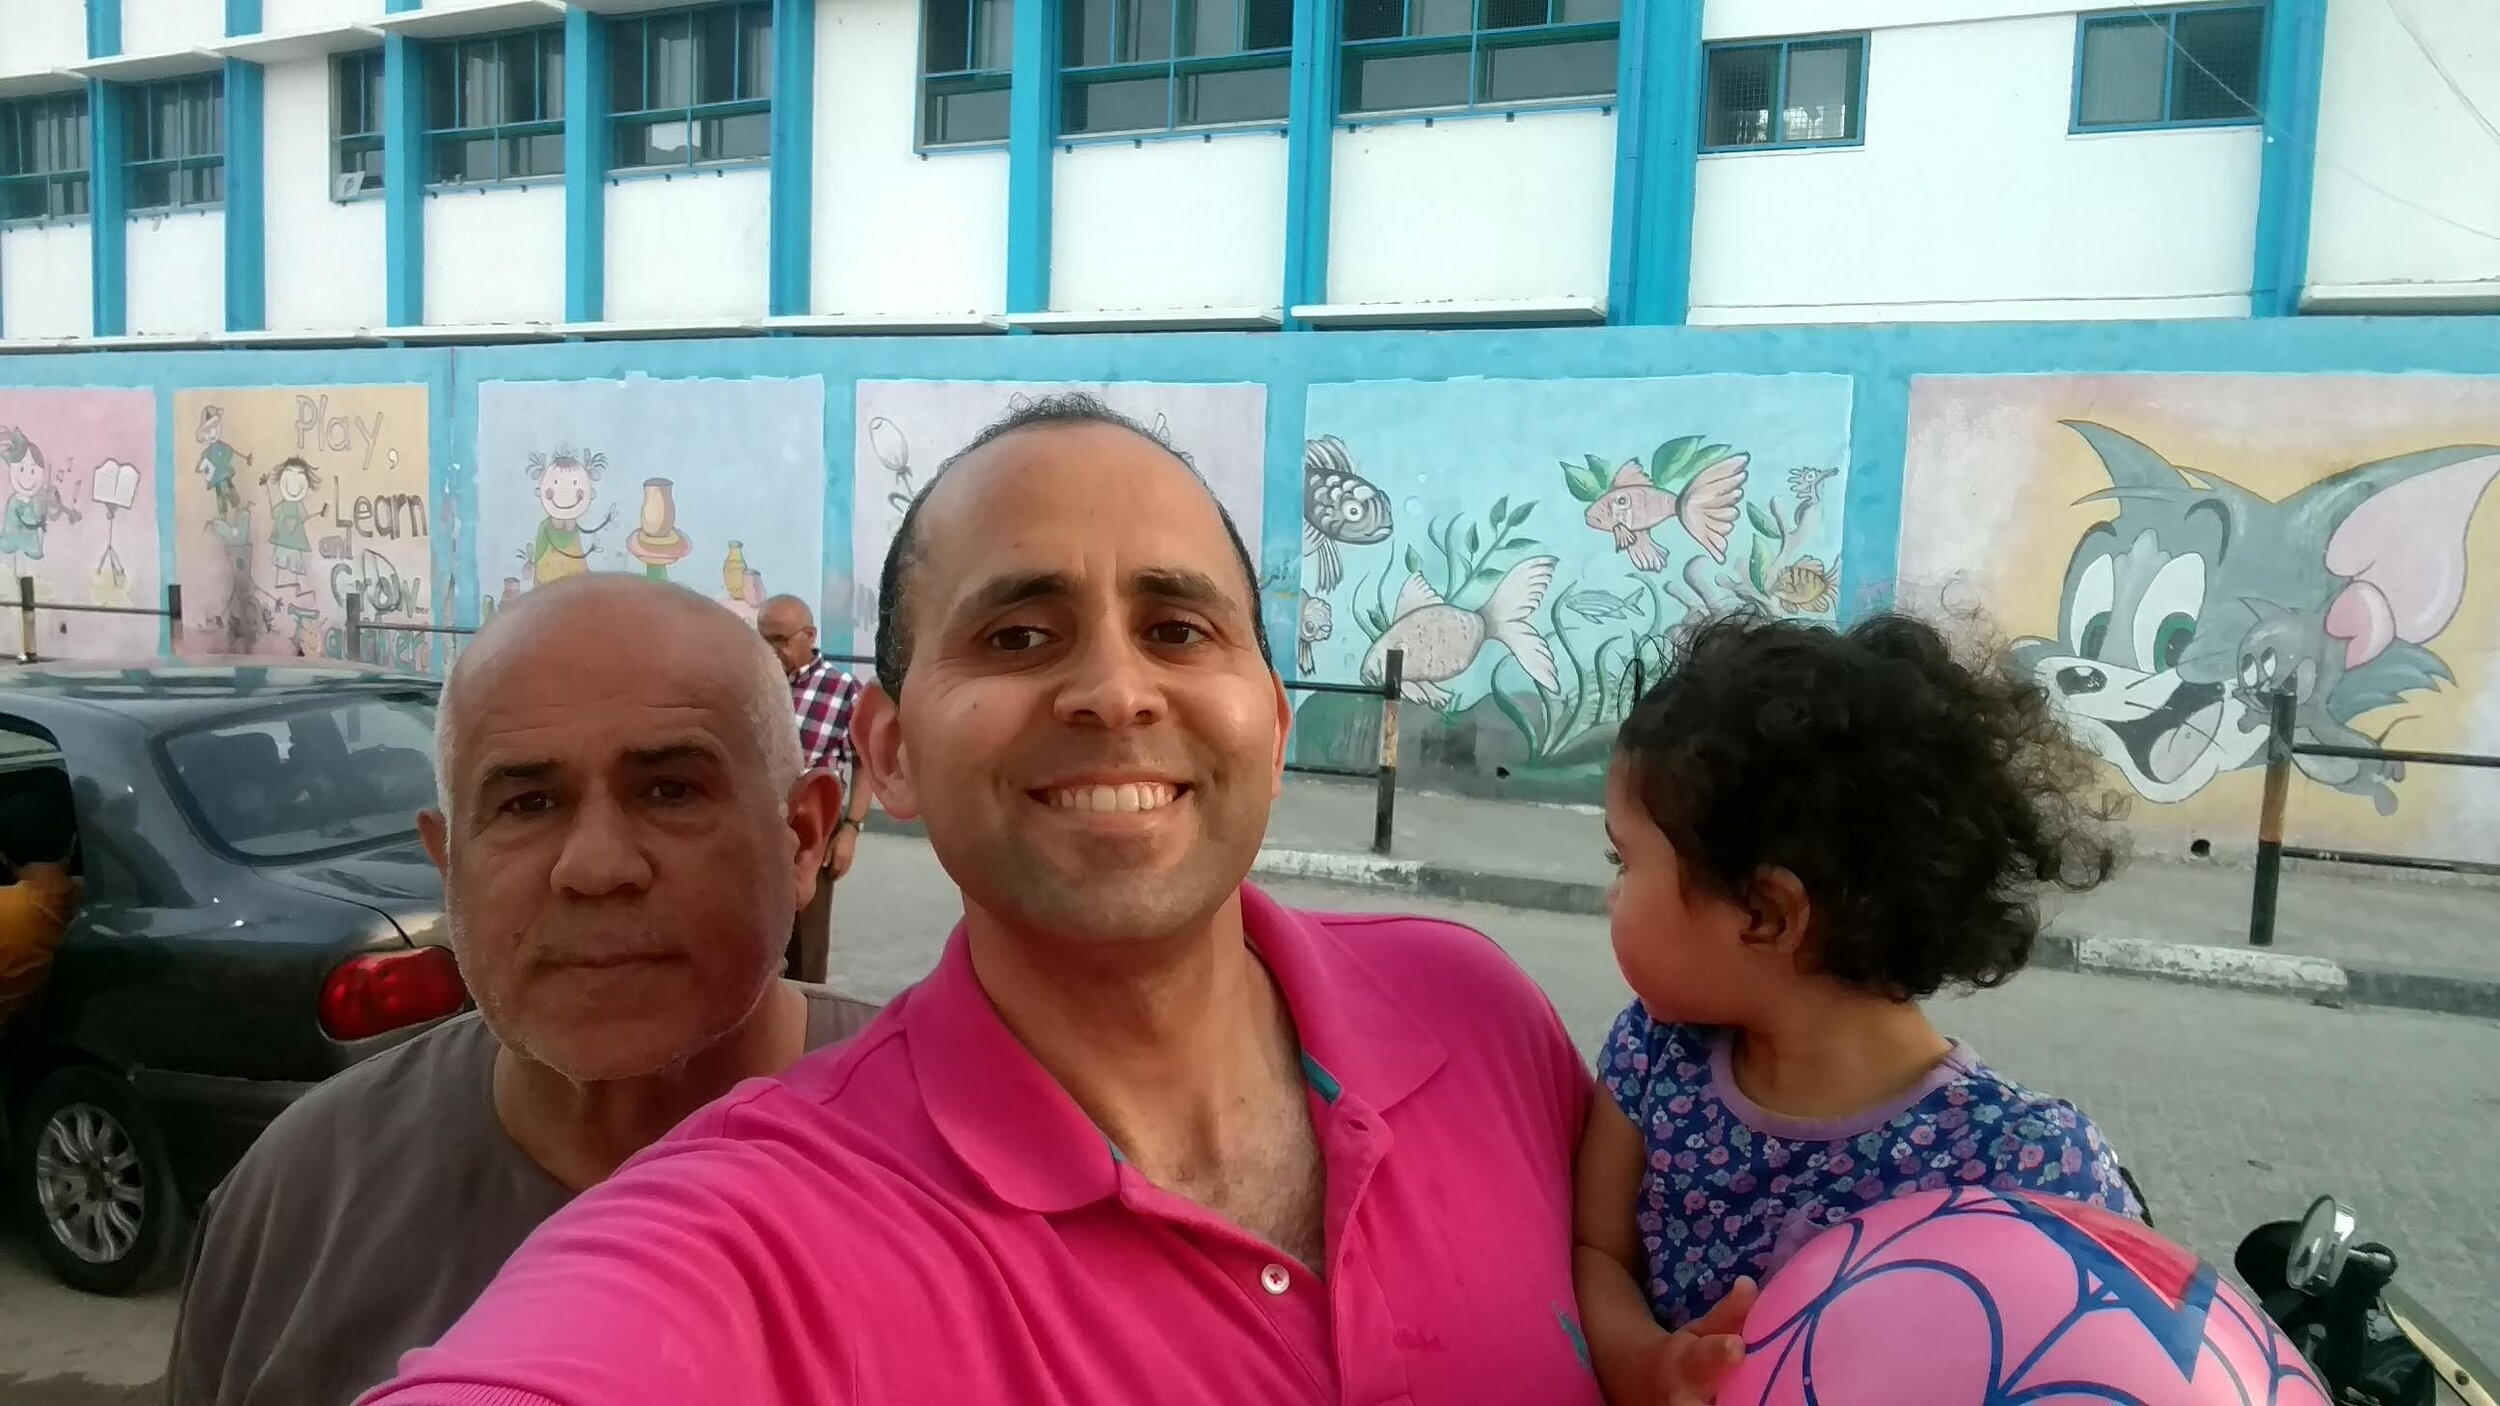 Hani and his uncle and daughter in front of an UNRWA school in the Gaza Strip